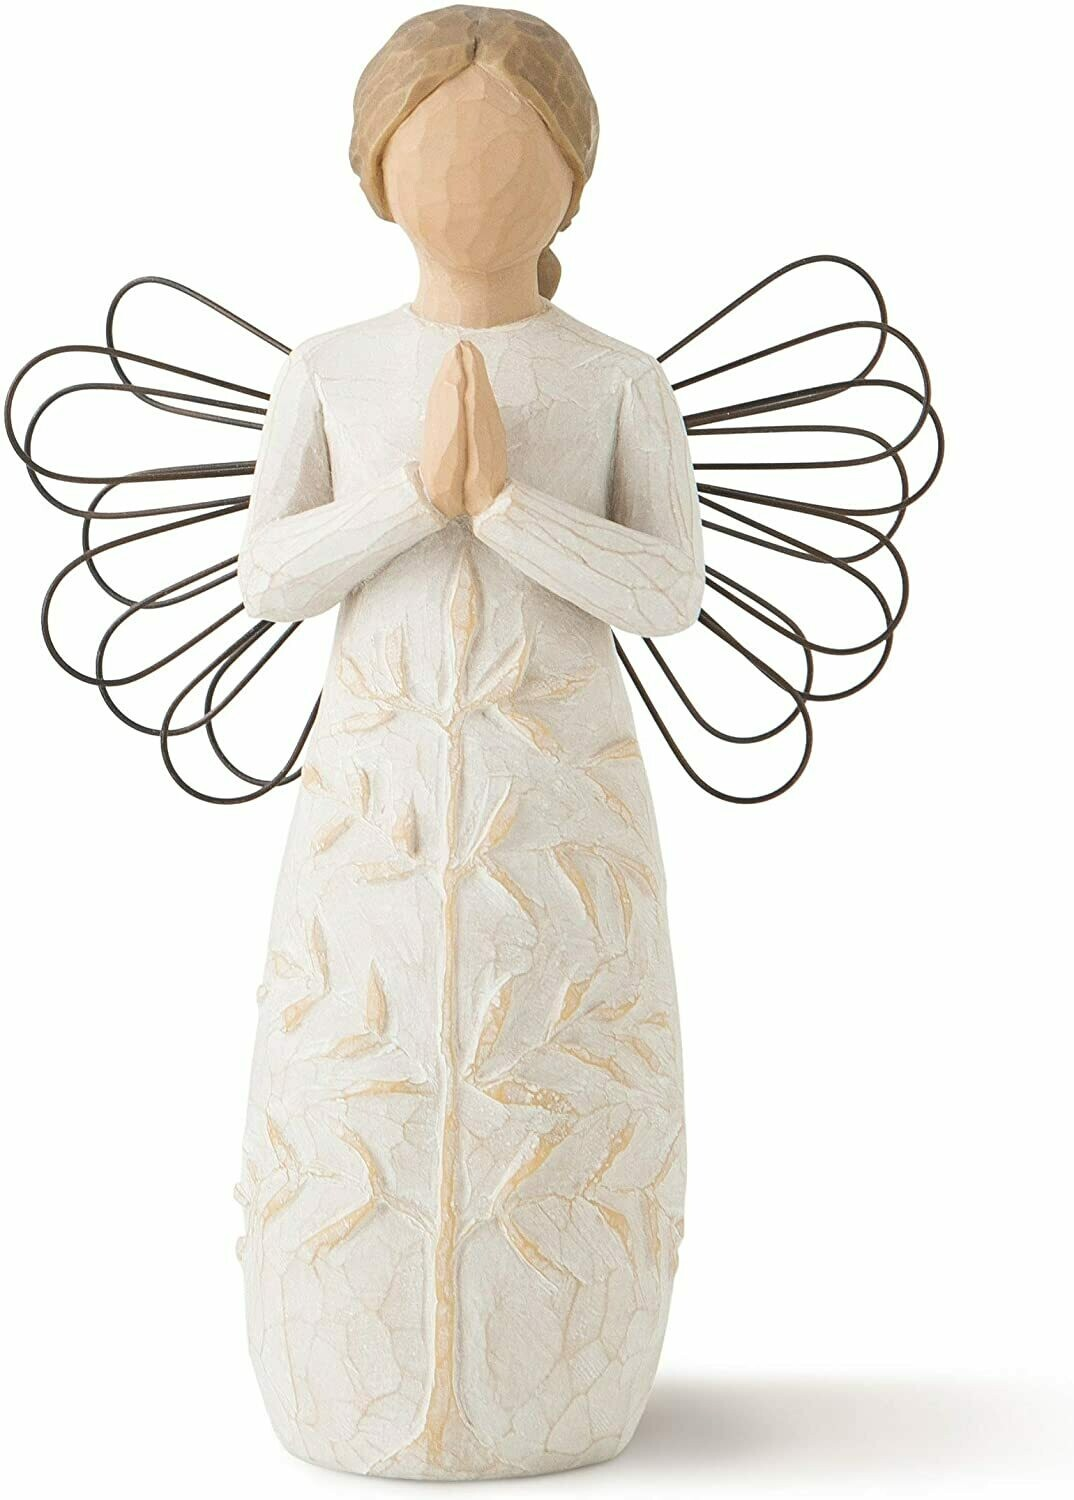 Willow Tree: Angel, A Tree, A Prayer - Wire Wings